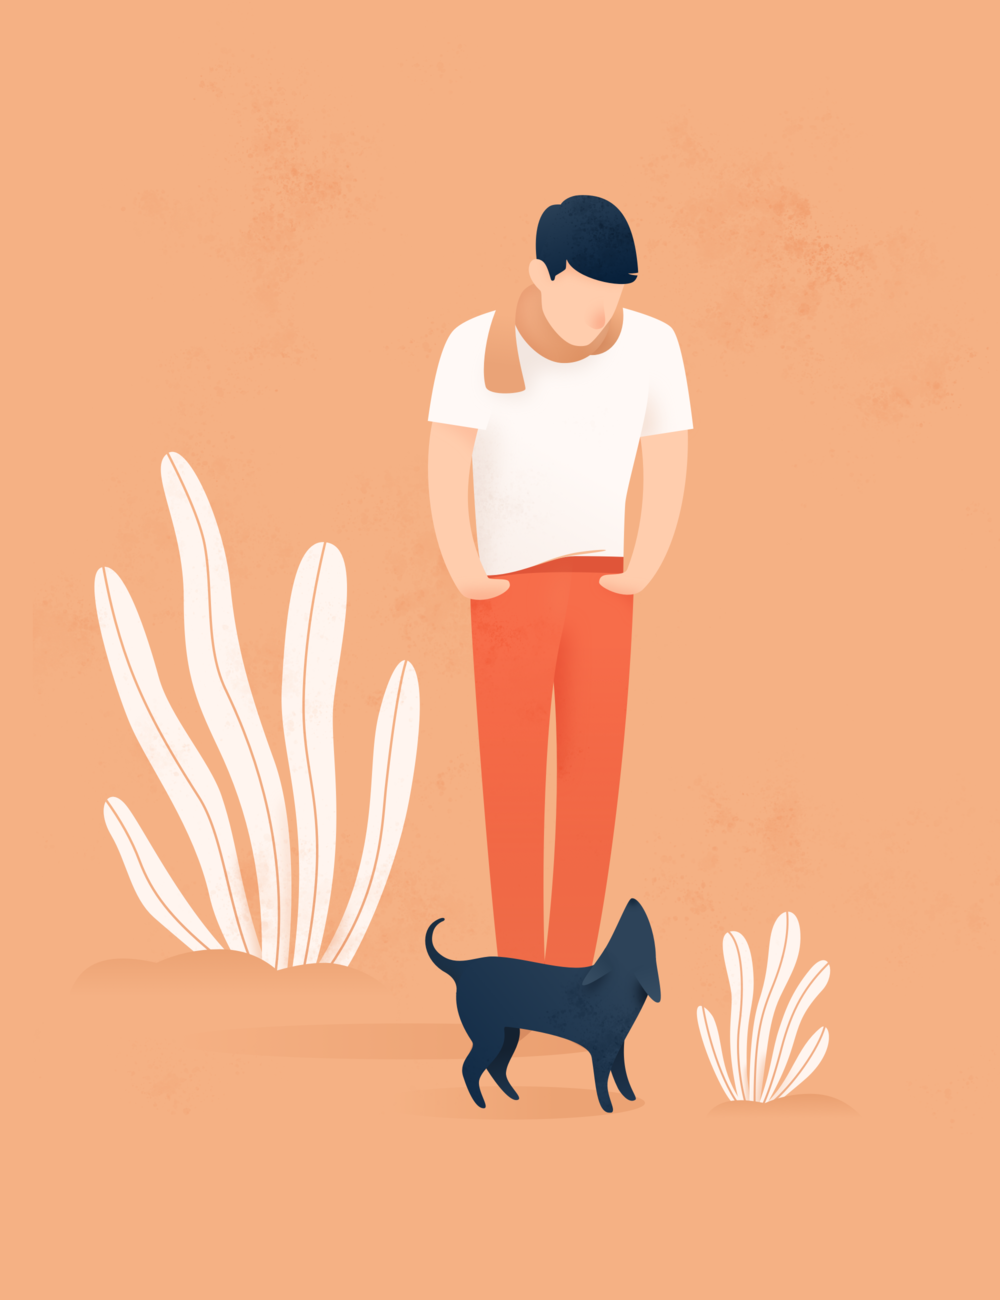 Man and dog illustration